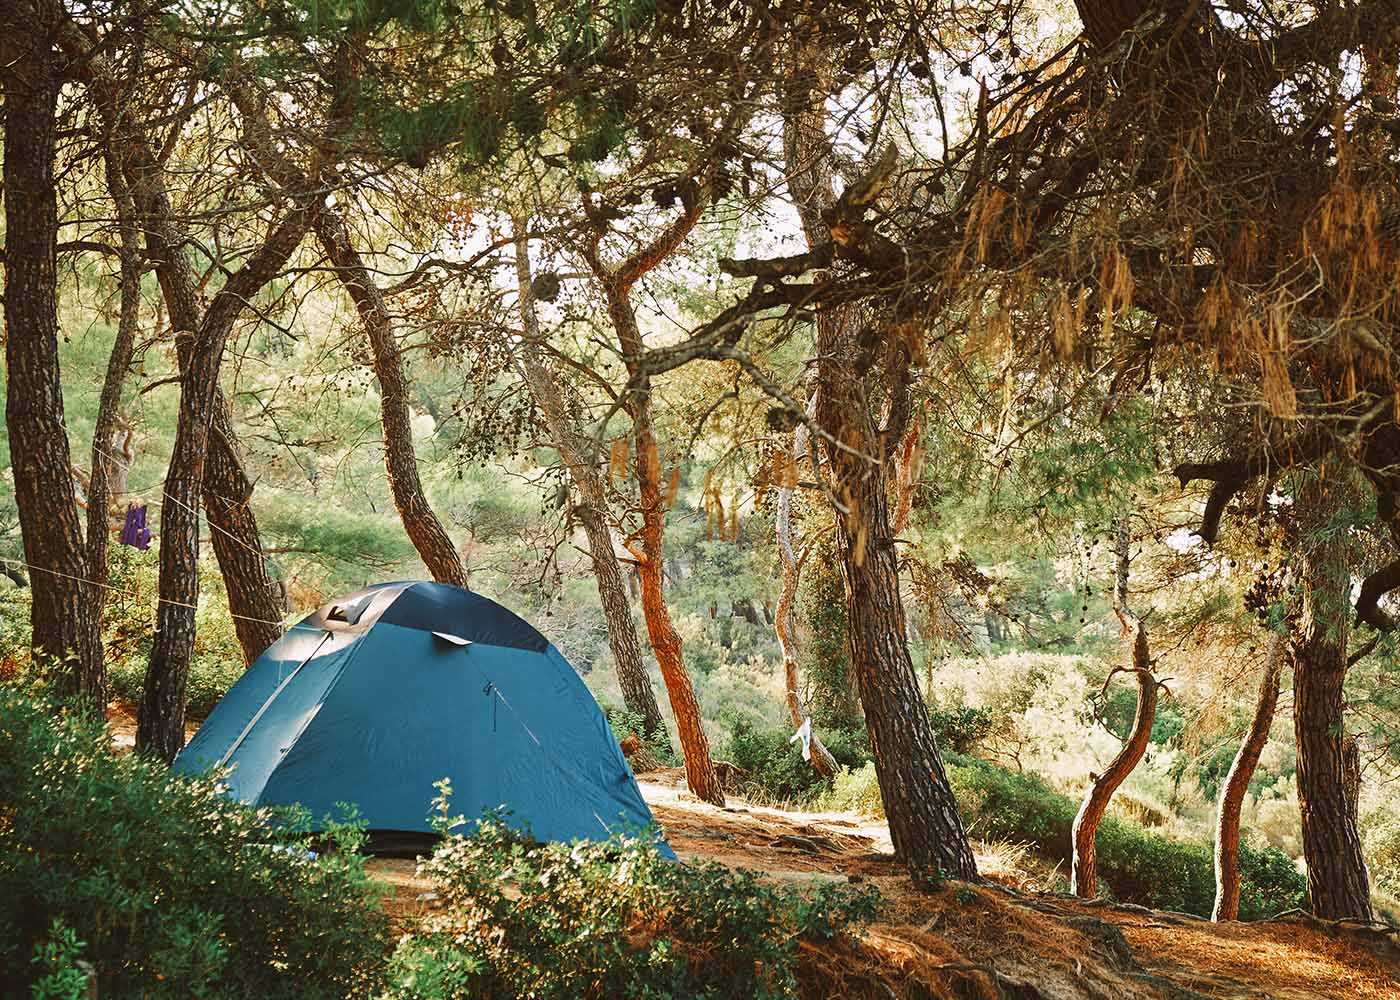 Camping in Texas